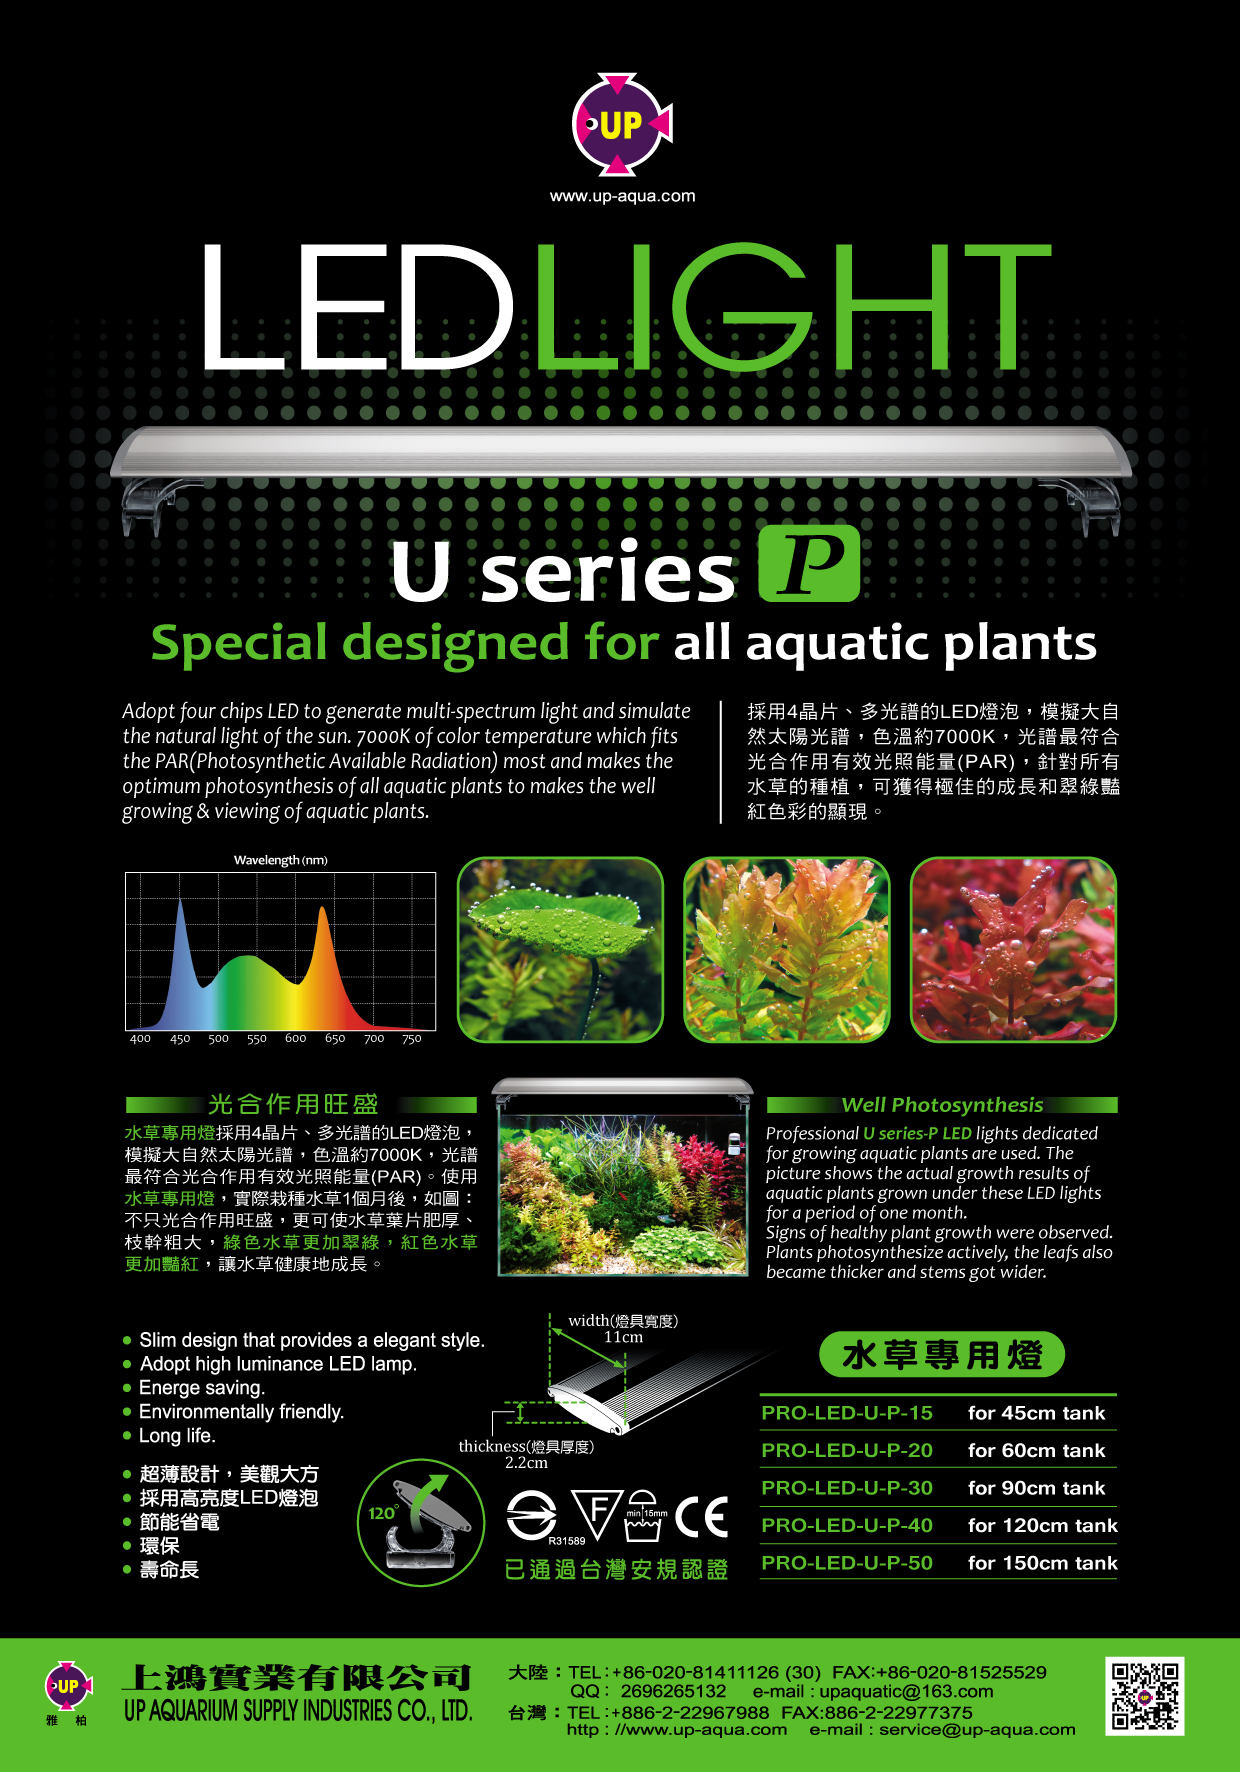 sc 1 st  UK Aquatic Plant Society & UP Aqua Pro U Series P Plants LED Lighting | UK Aquatic Plant Society